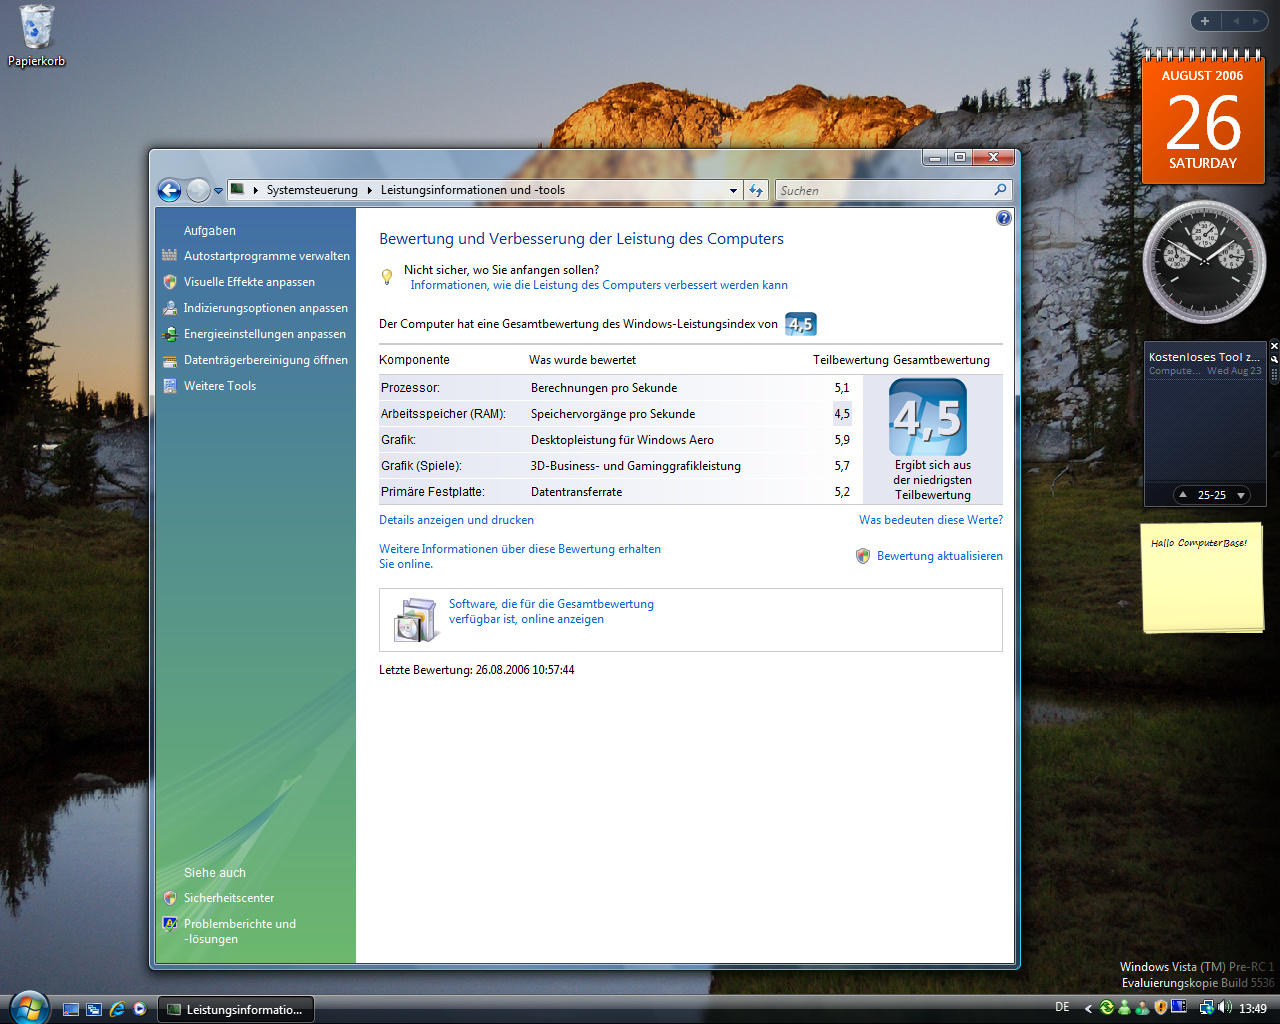 Windows Vista Build 5536 - Leistungsinformationen